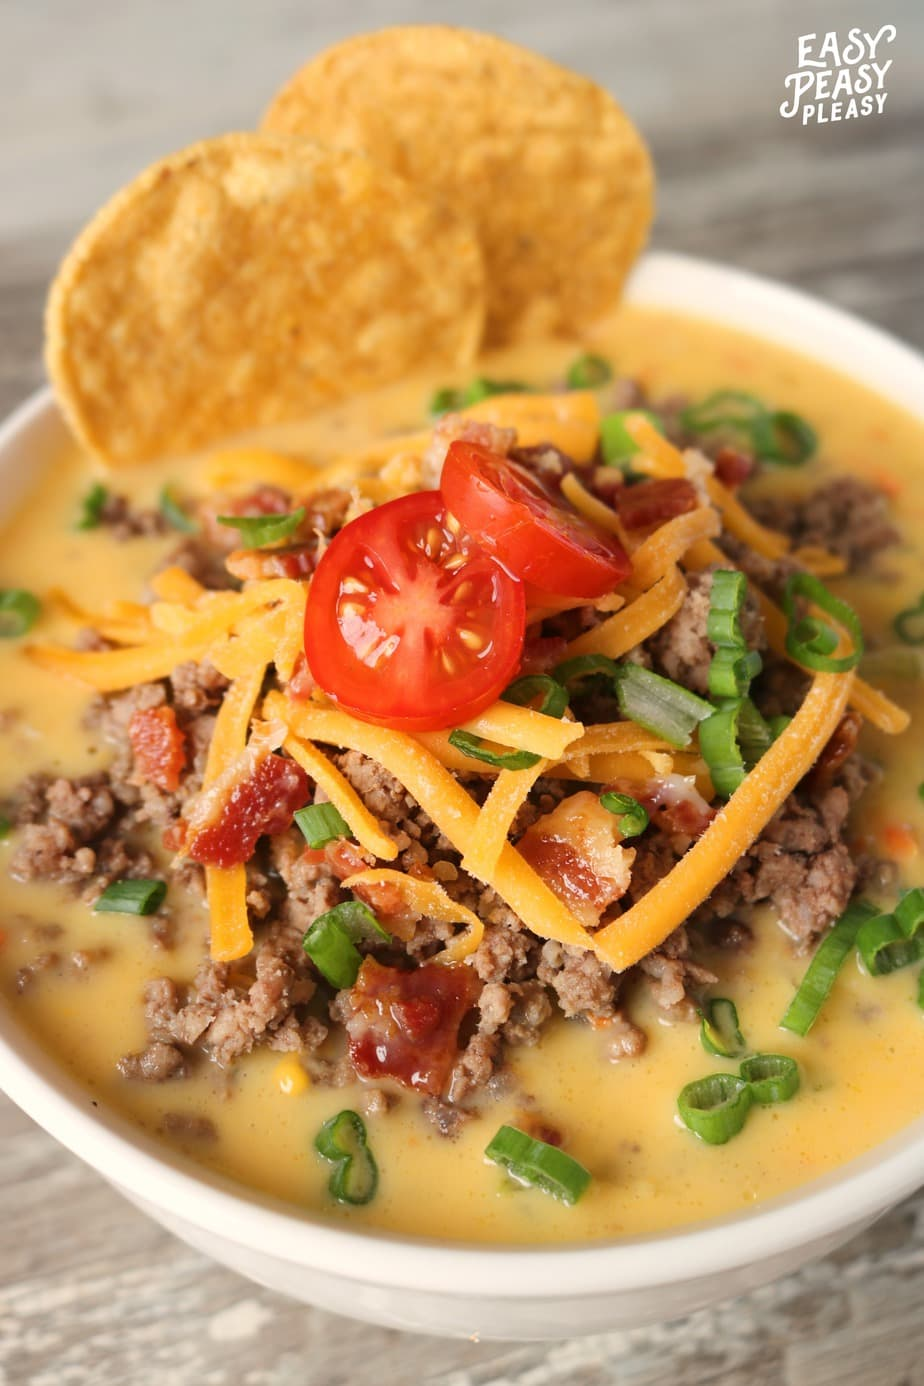 Winner Winner Bacon Cheeseburger Soup Dinner! This is the perfect warm and cheesy soup for dinner tonight as well as an easy meal prep freezer recipe.